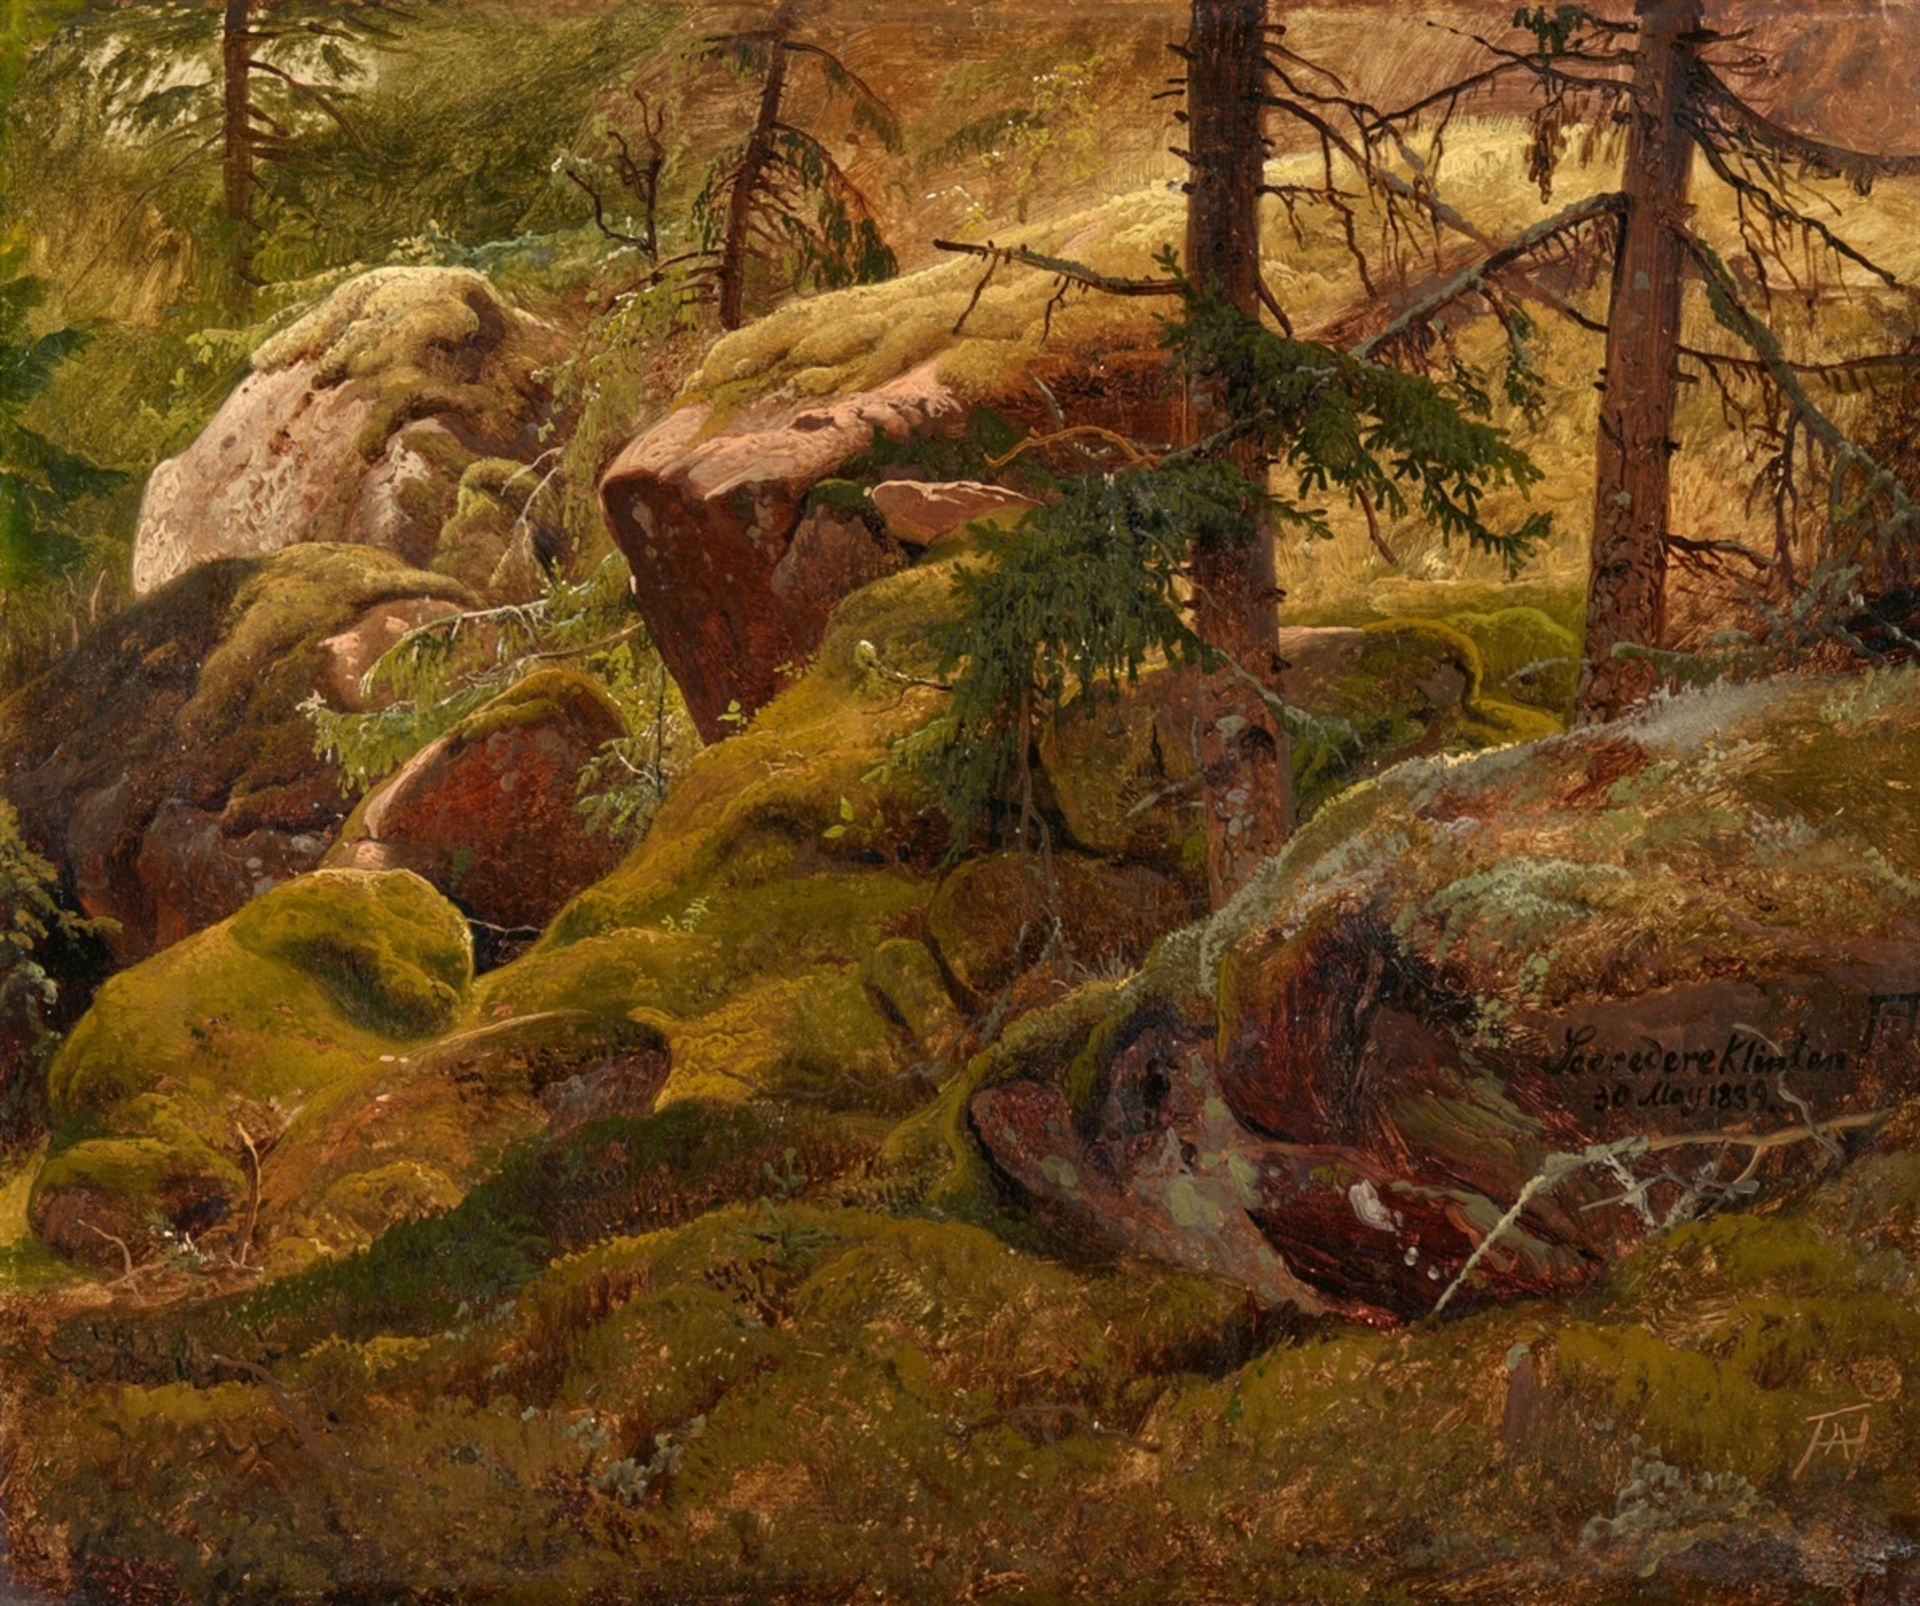 Los 2527 - Andreas AchenbachForest Landscape with Moss Covered Boulders – Sceredere KlintenOil on panel (